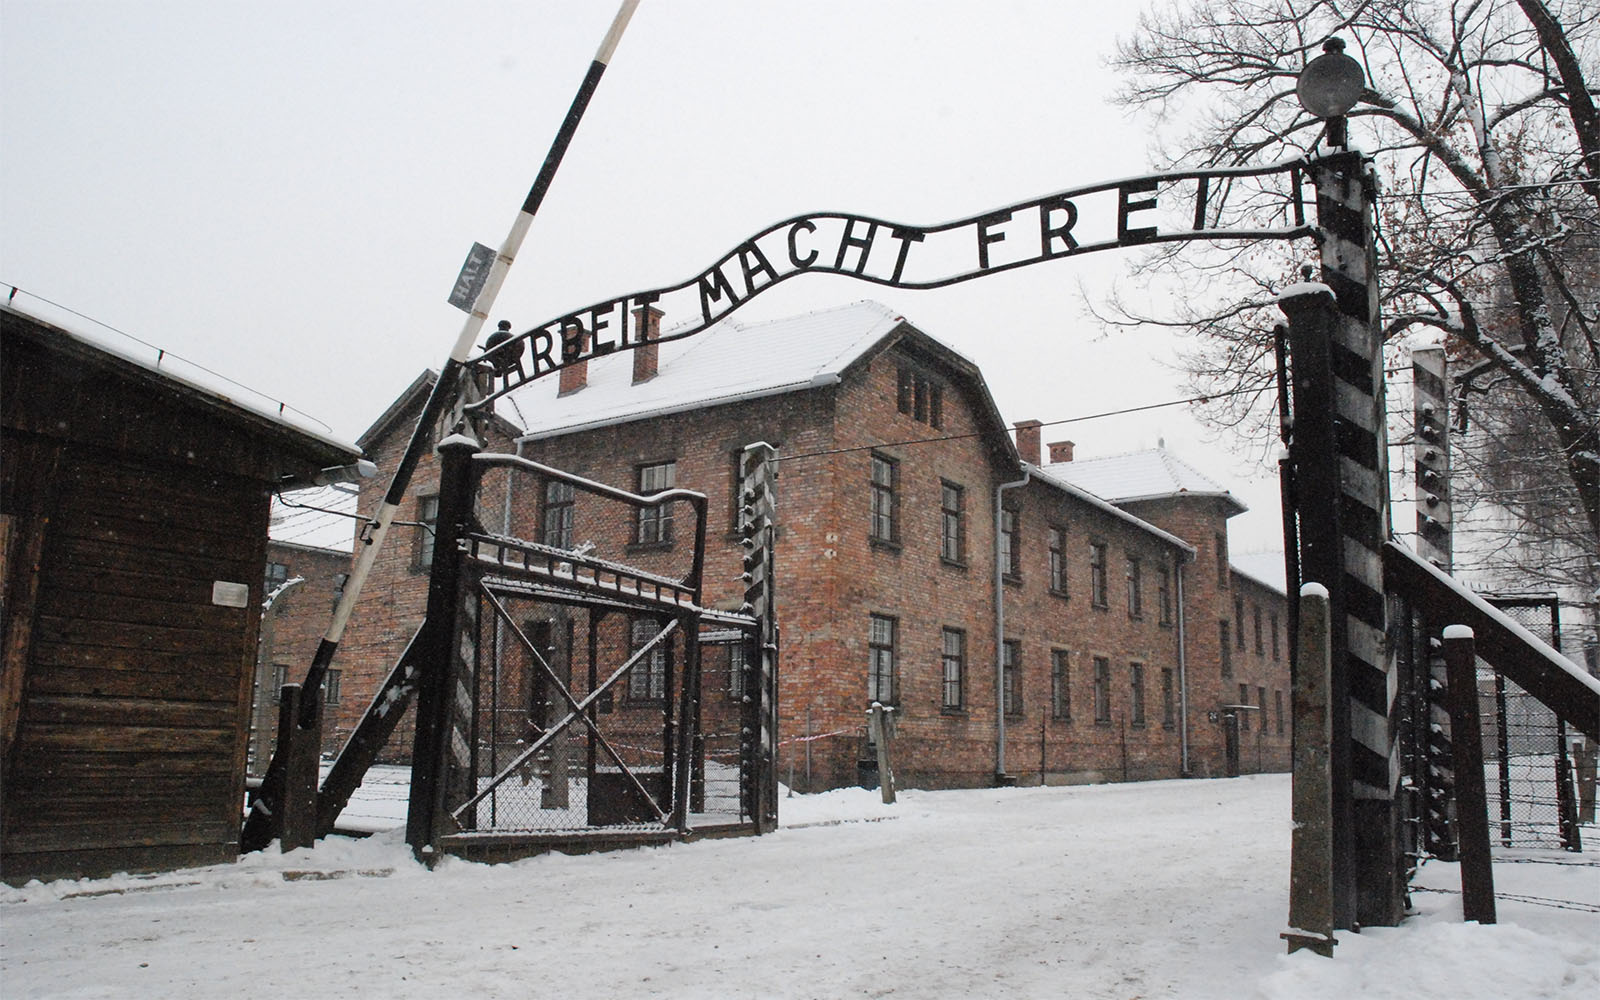 From Krakow to Auschwitz - the entrance gate